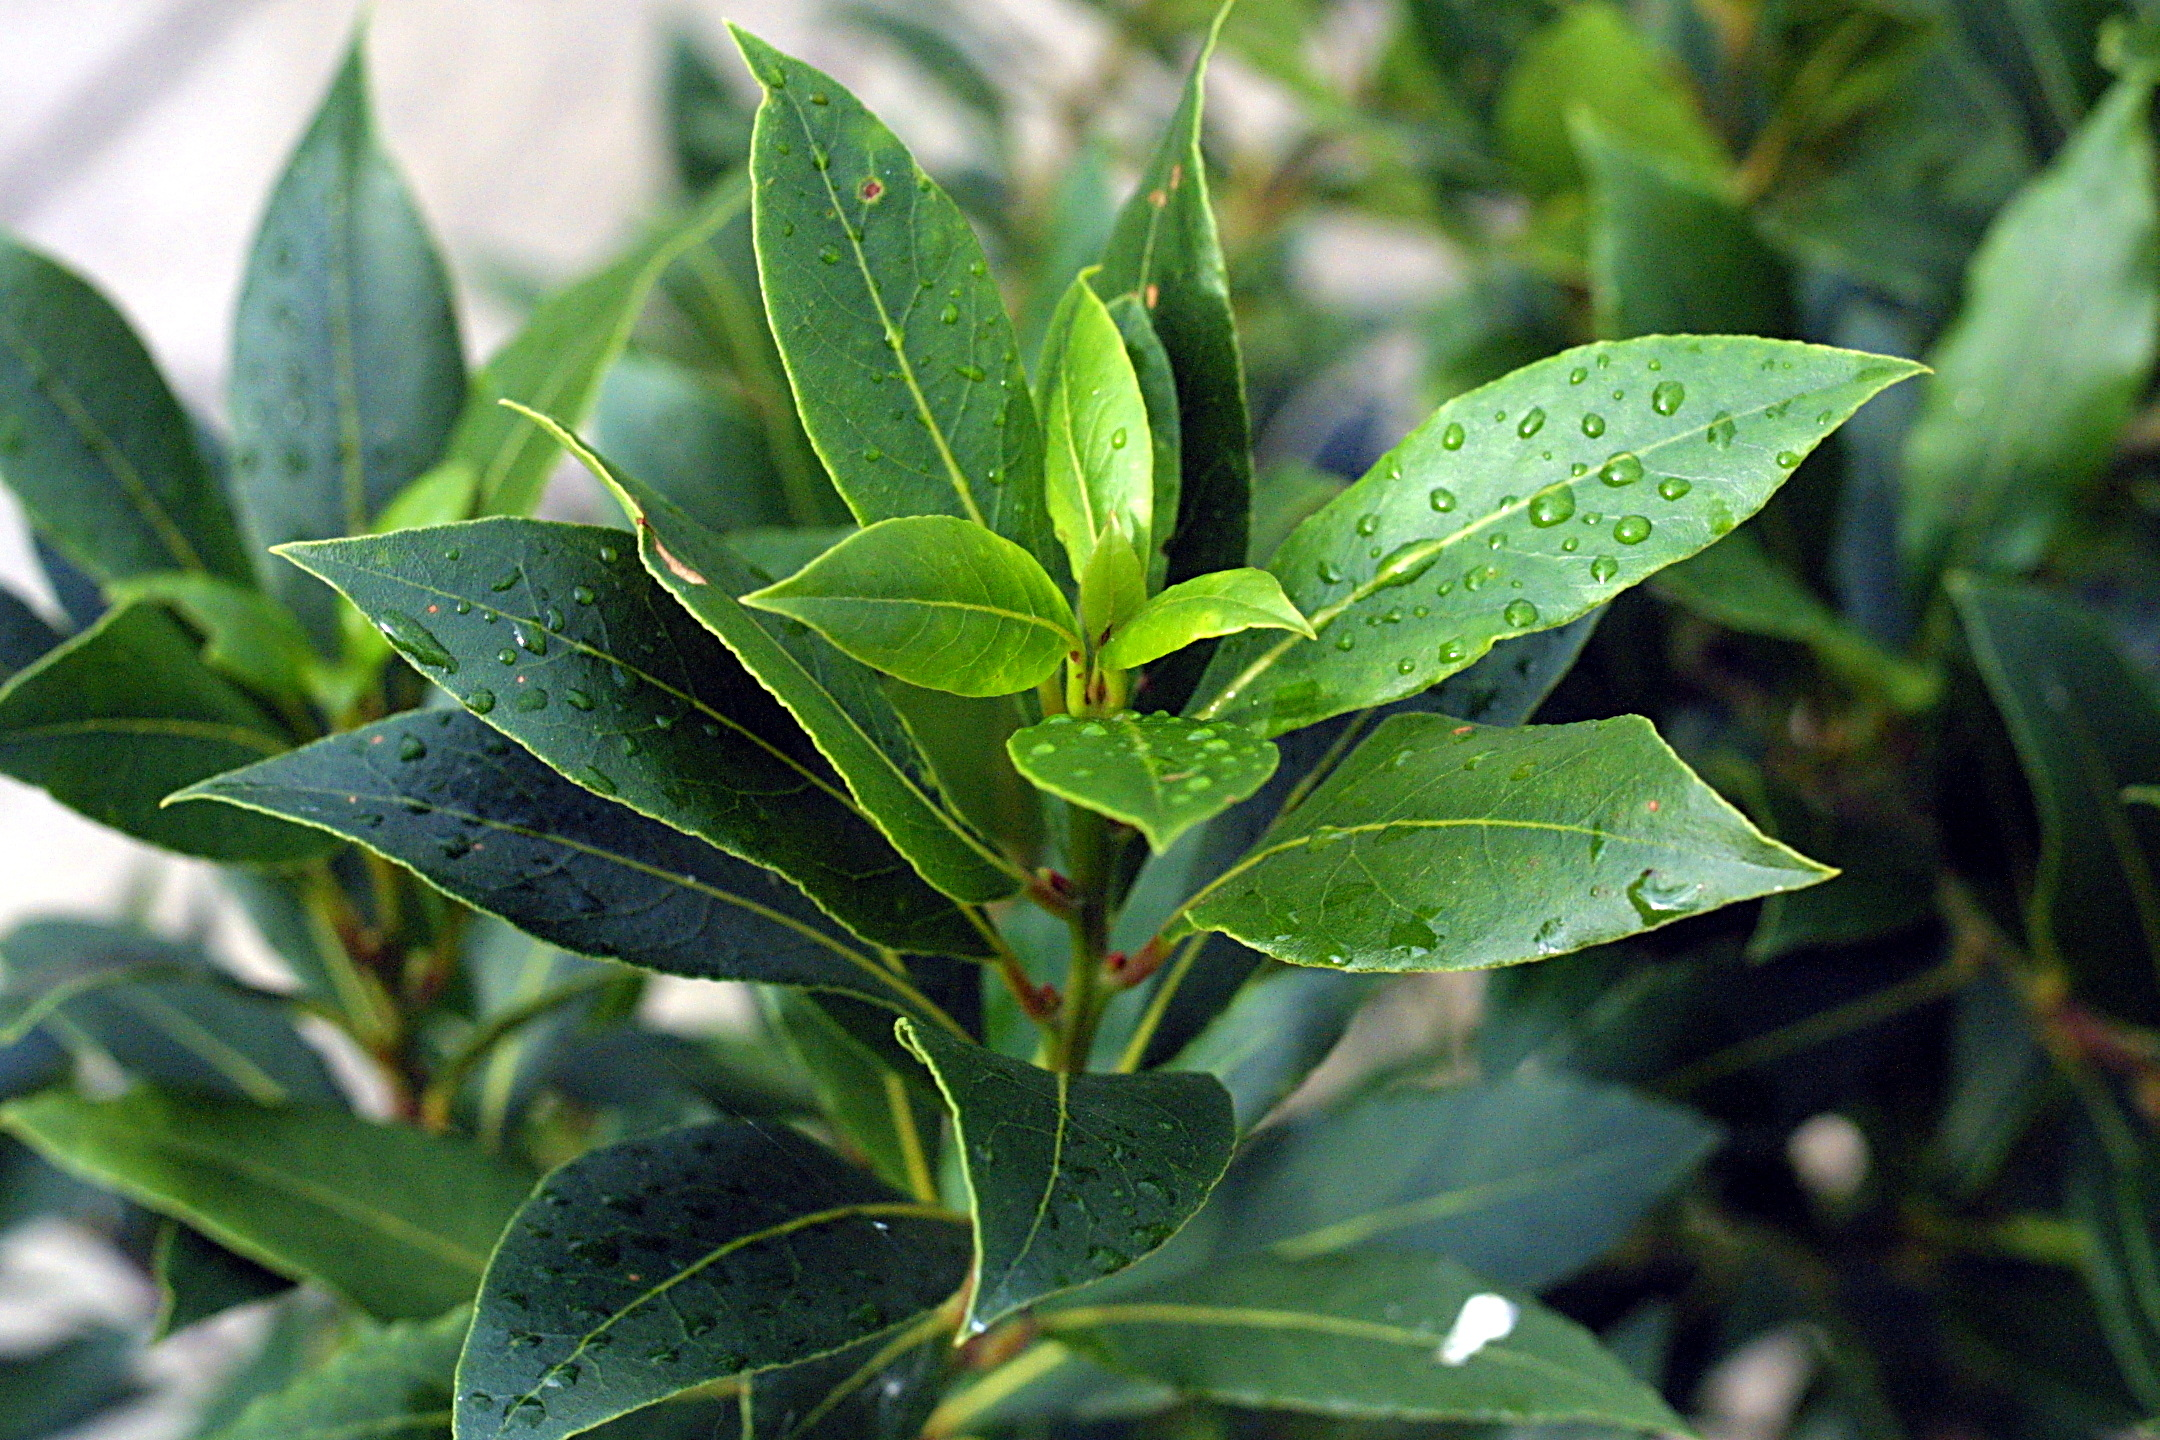 File:Bay tree leaves.jpeg - Wikimedia Commons